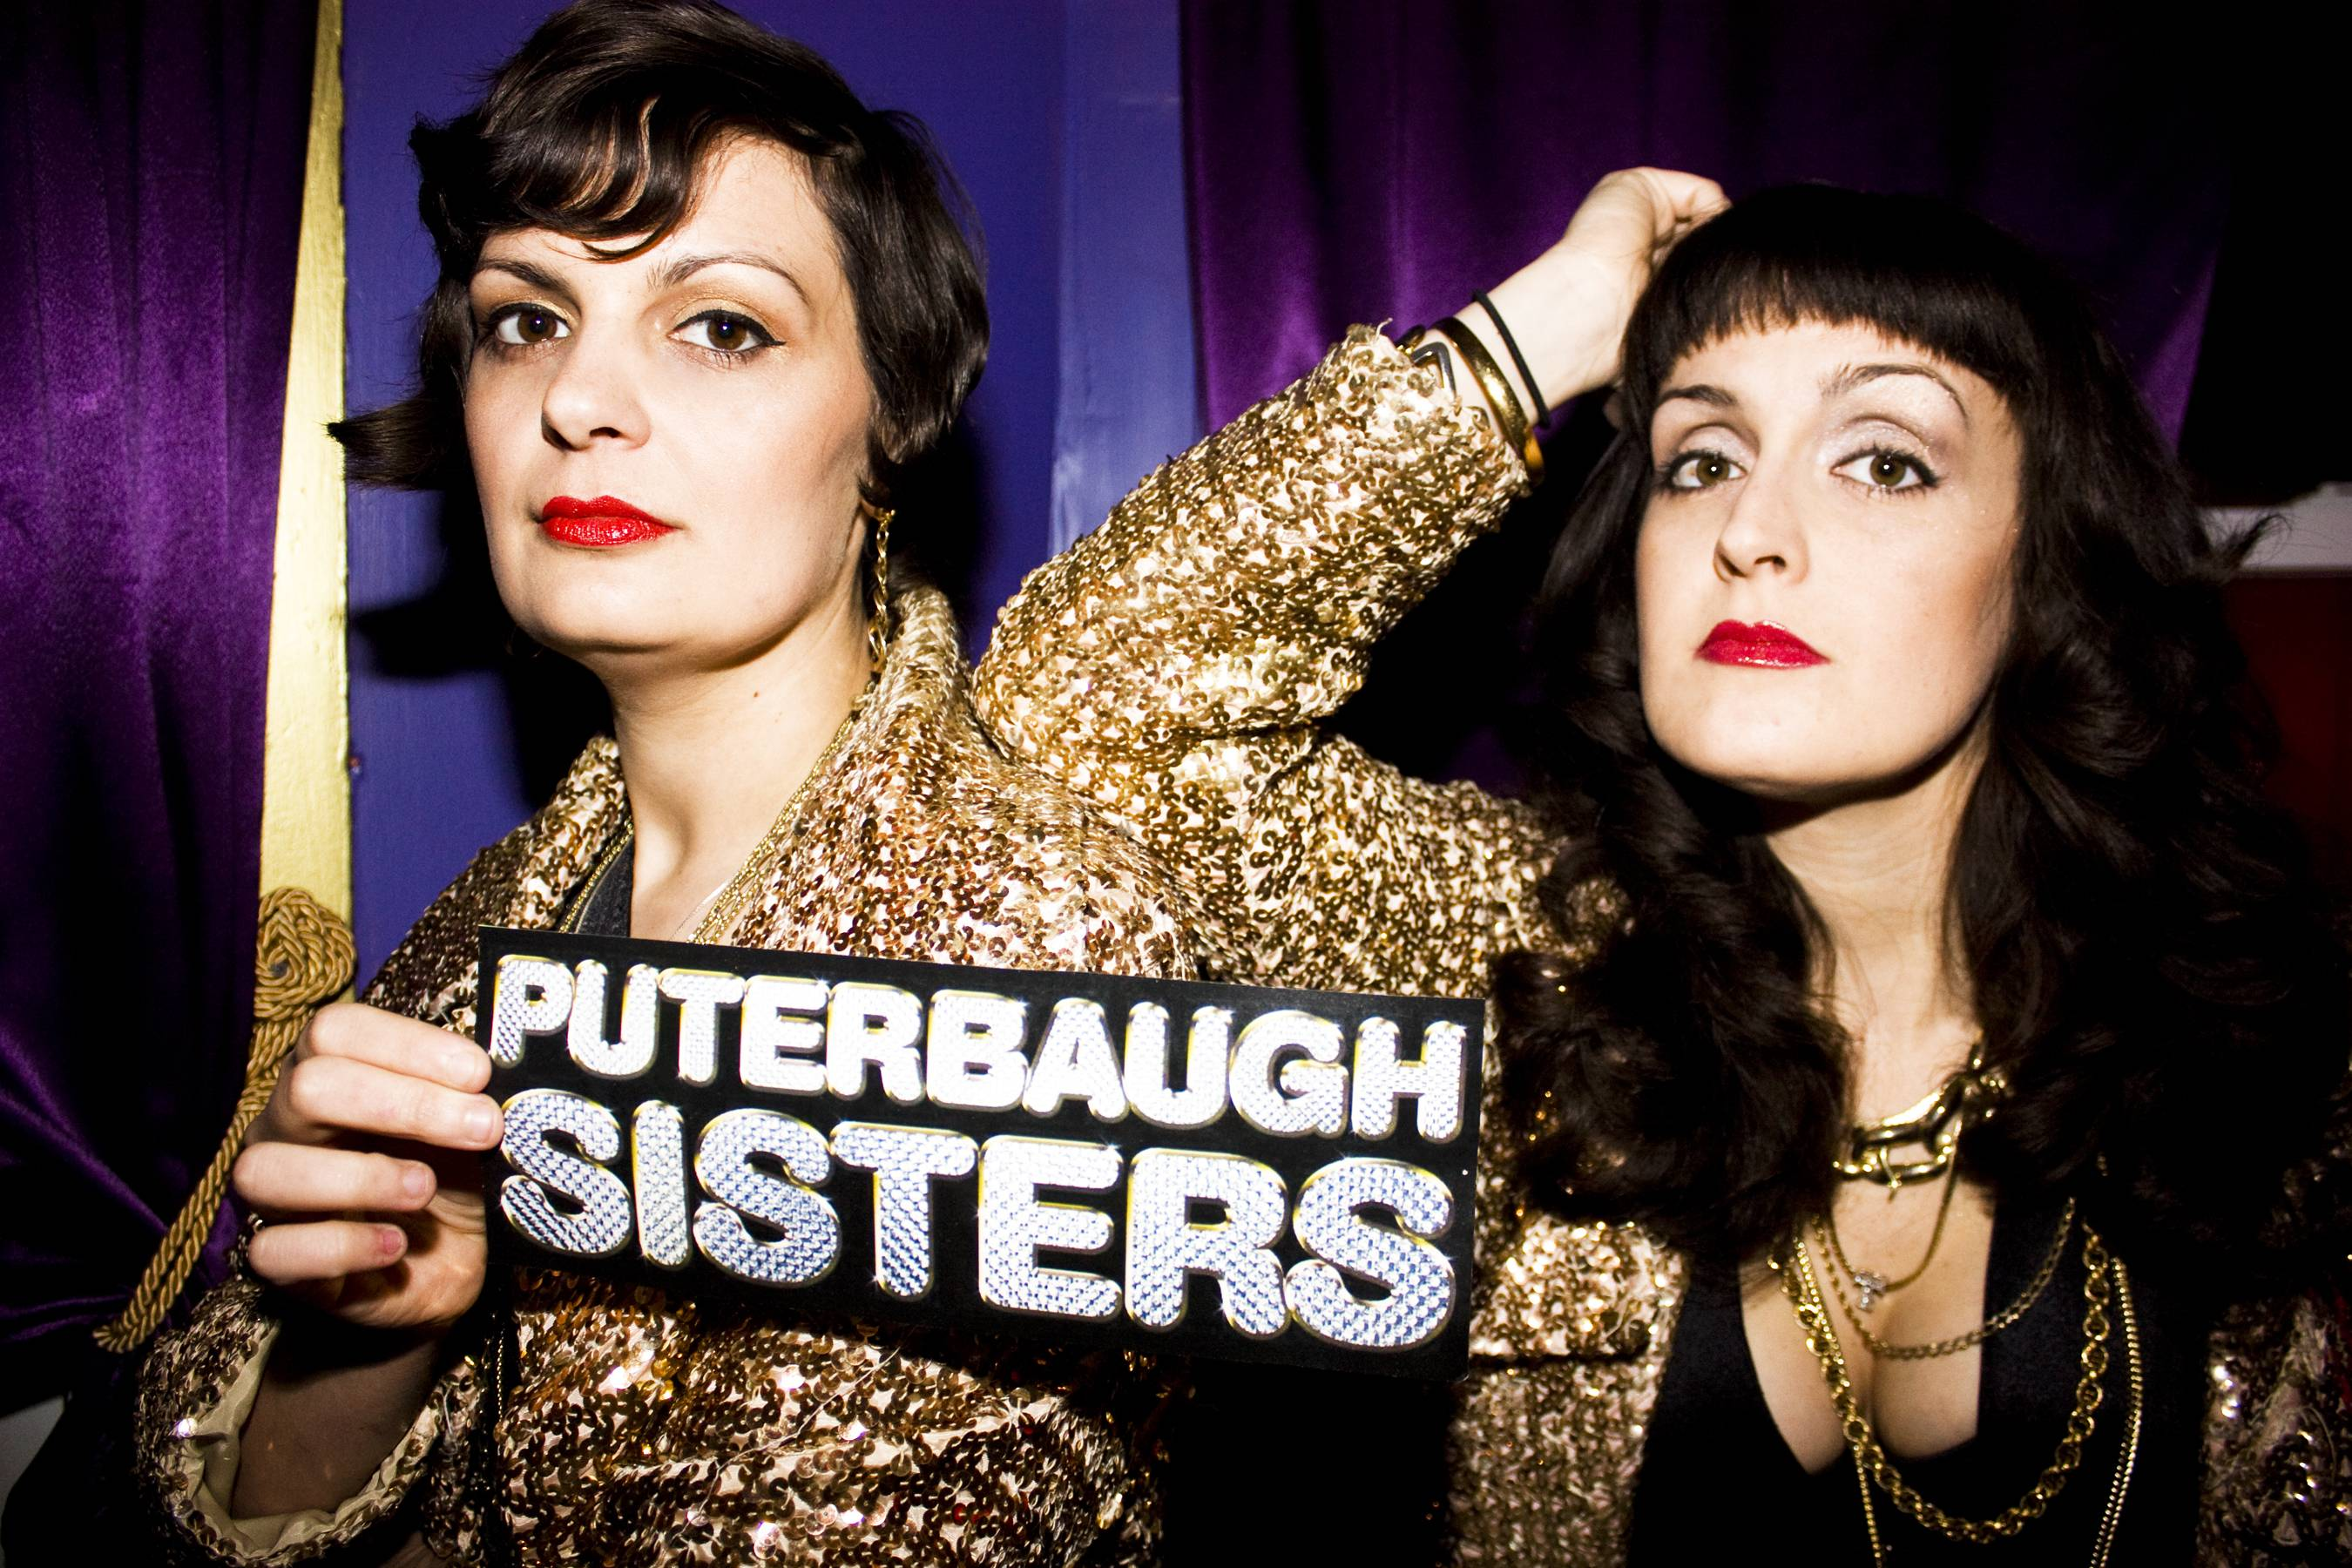 The Puterbaugh Sisters will appear at the Park West on Saturday, February 15 at 7:30 p.m. as part of the More Bang for Your Buck Valentine's Day Rockin' Variety Show.